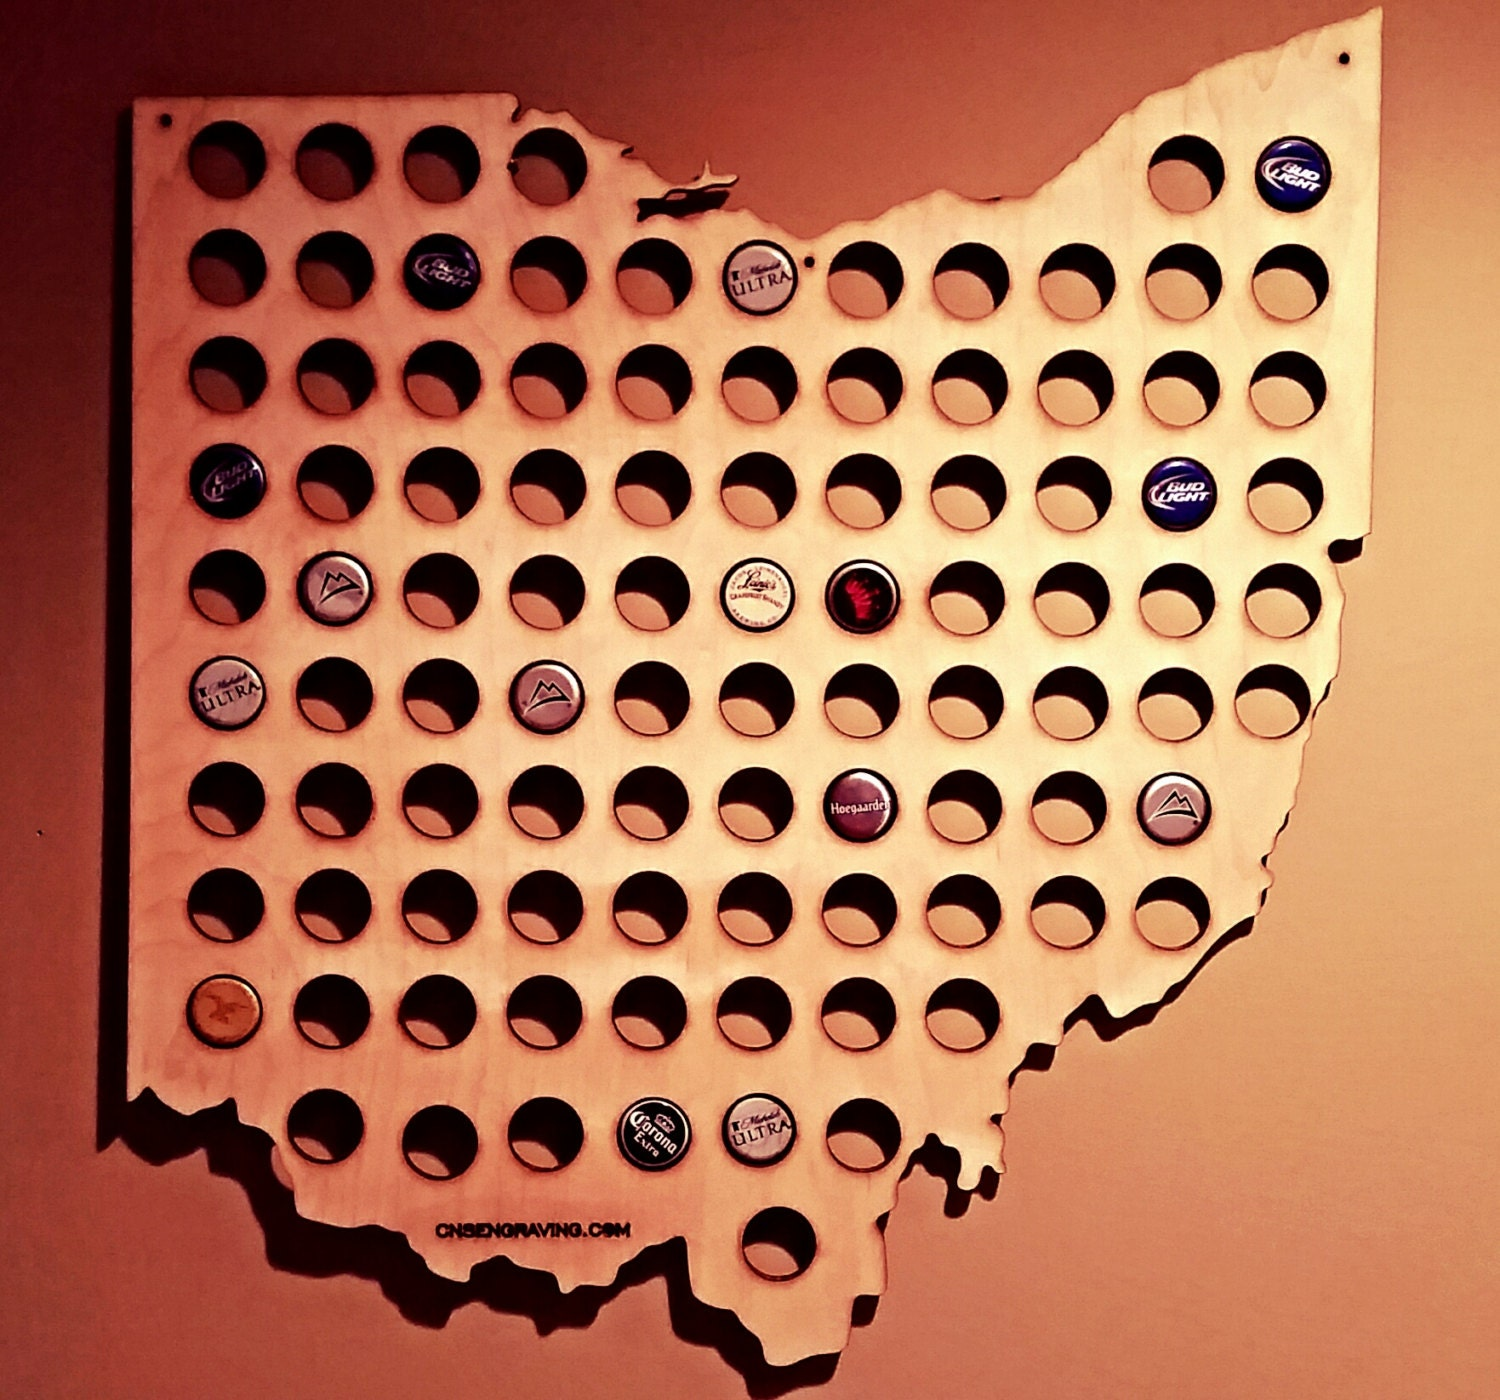 Ohio Shaped Bottle Cap Map - Us beer cap map